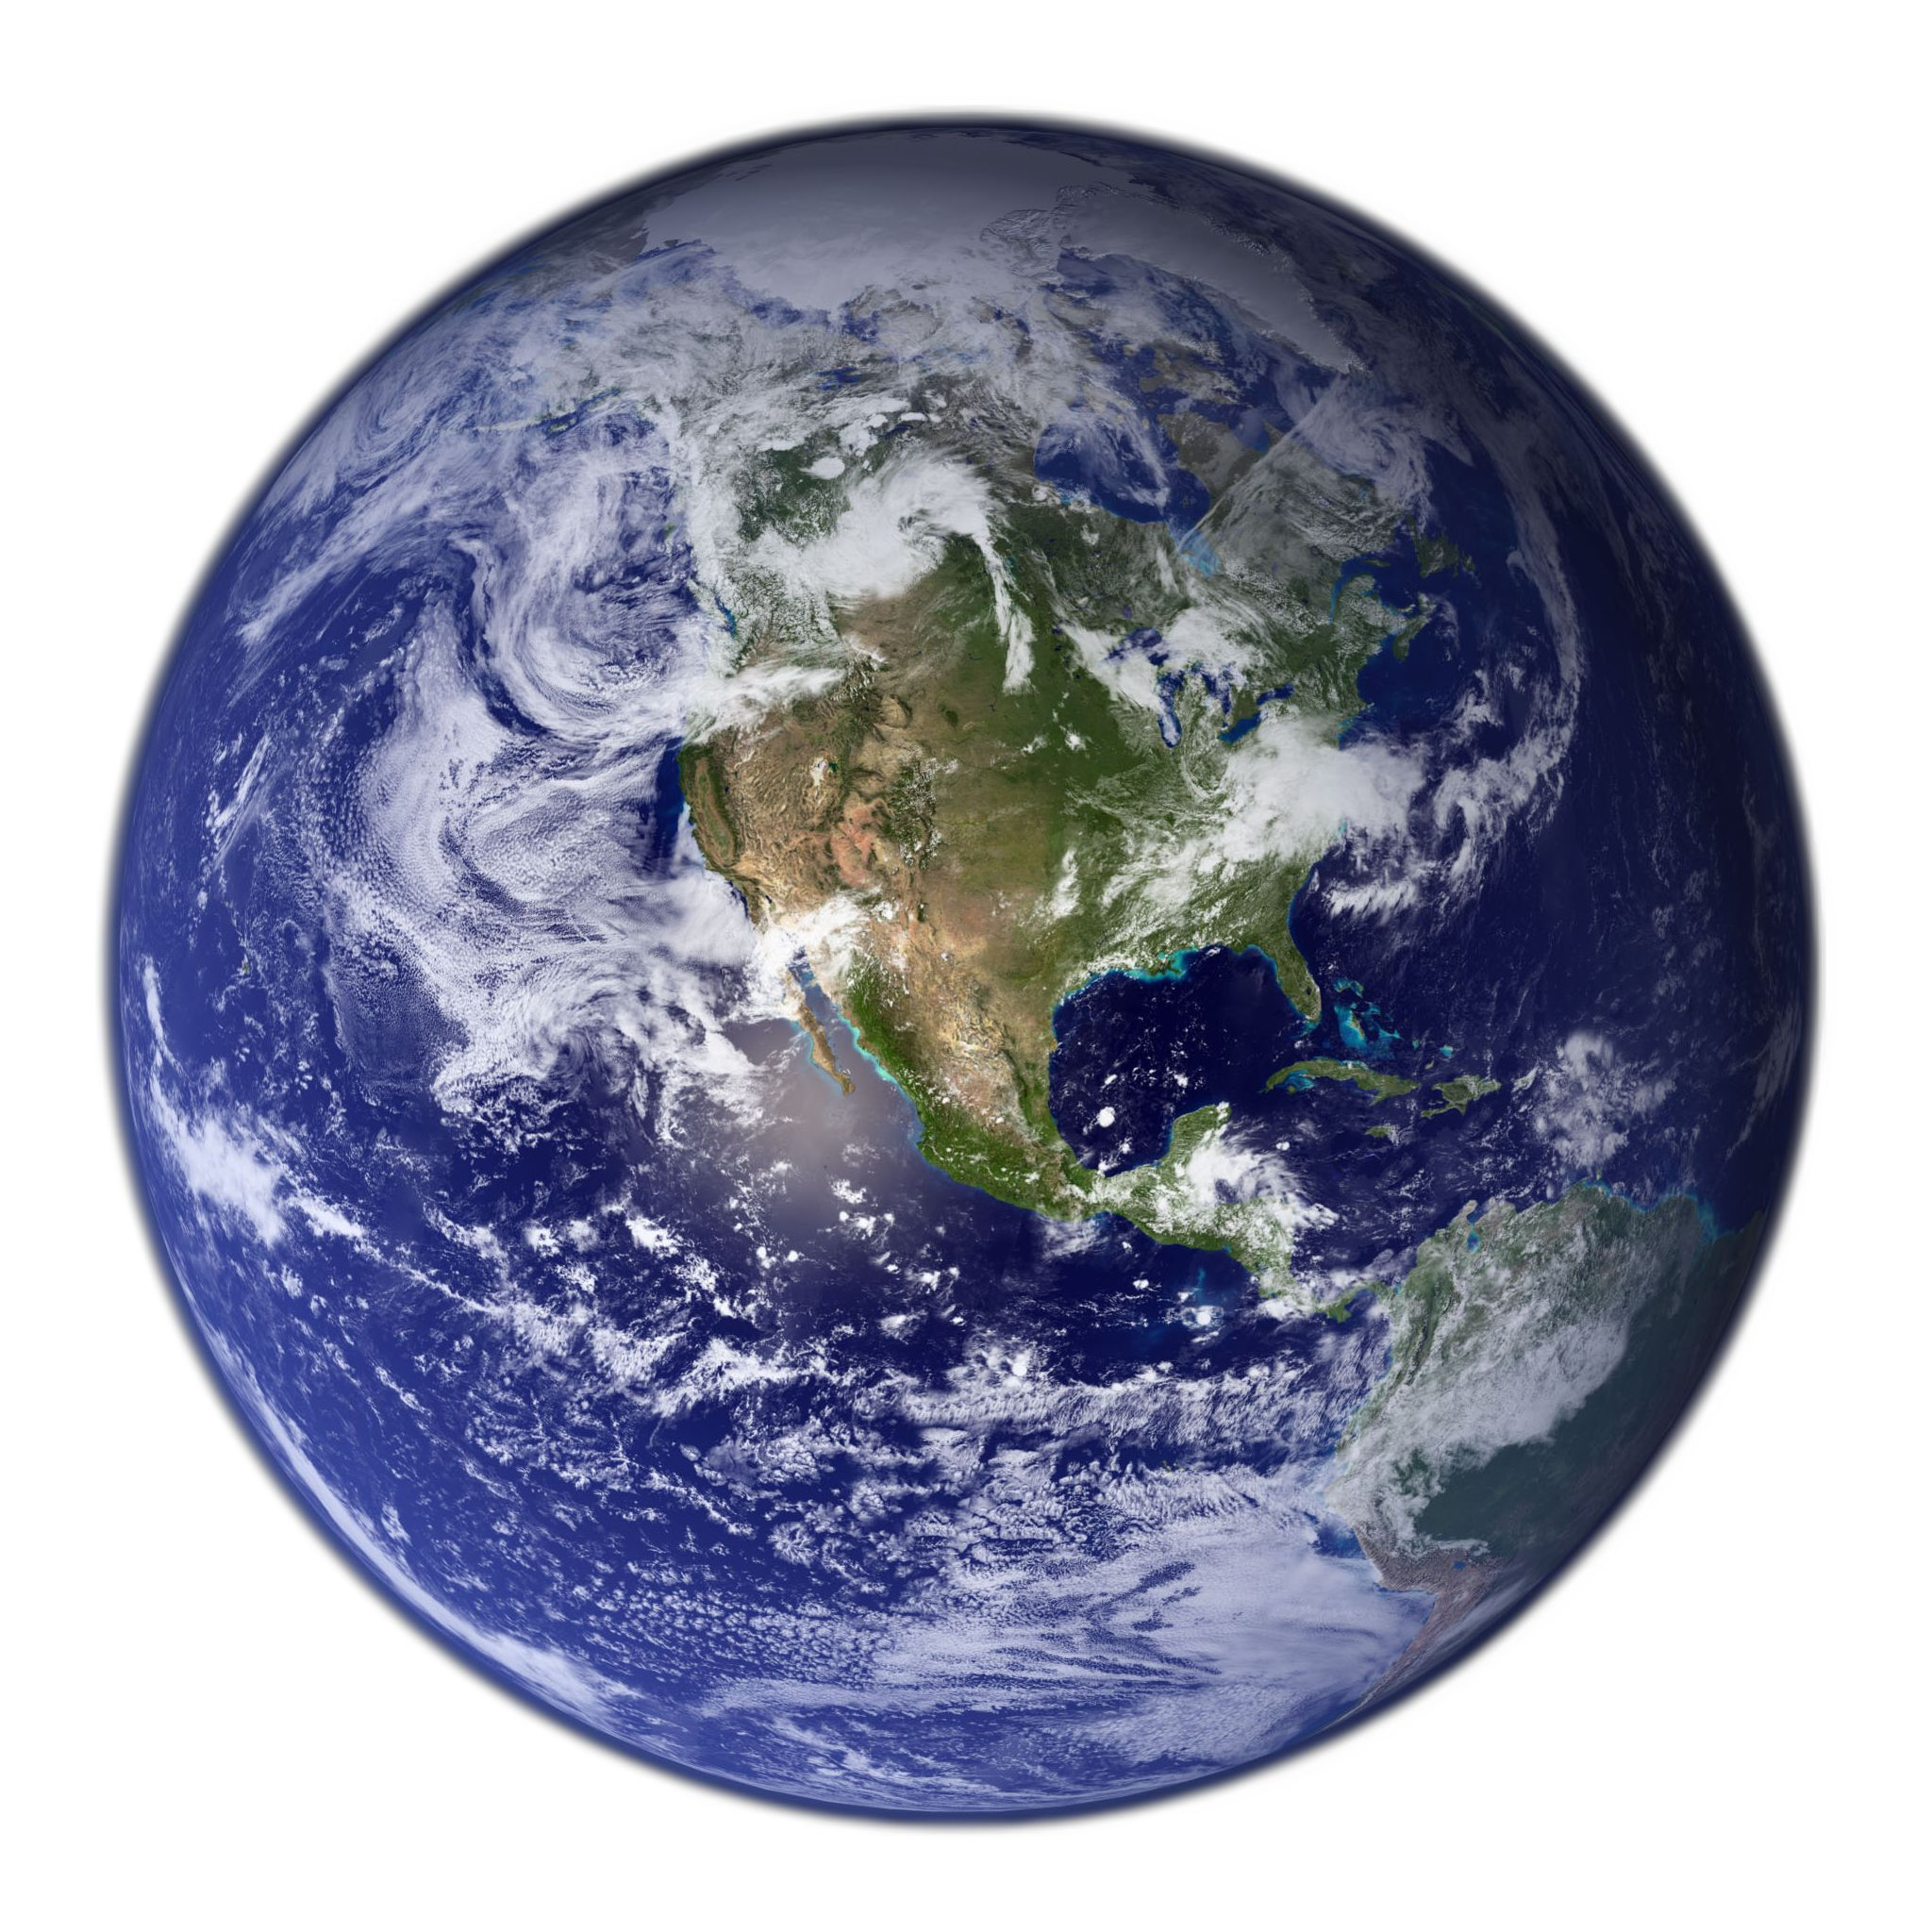 Earth_Western_Hemisphere_transparent_background.jpg